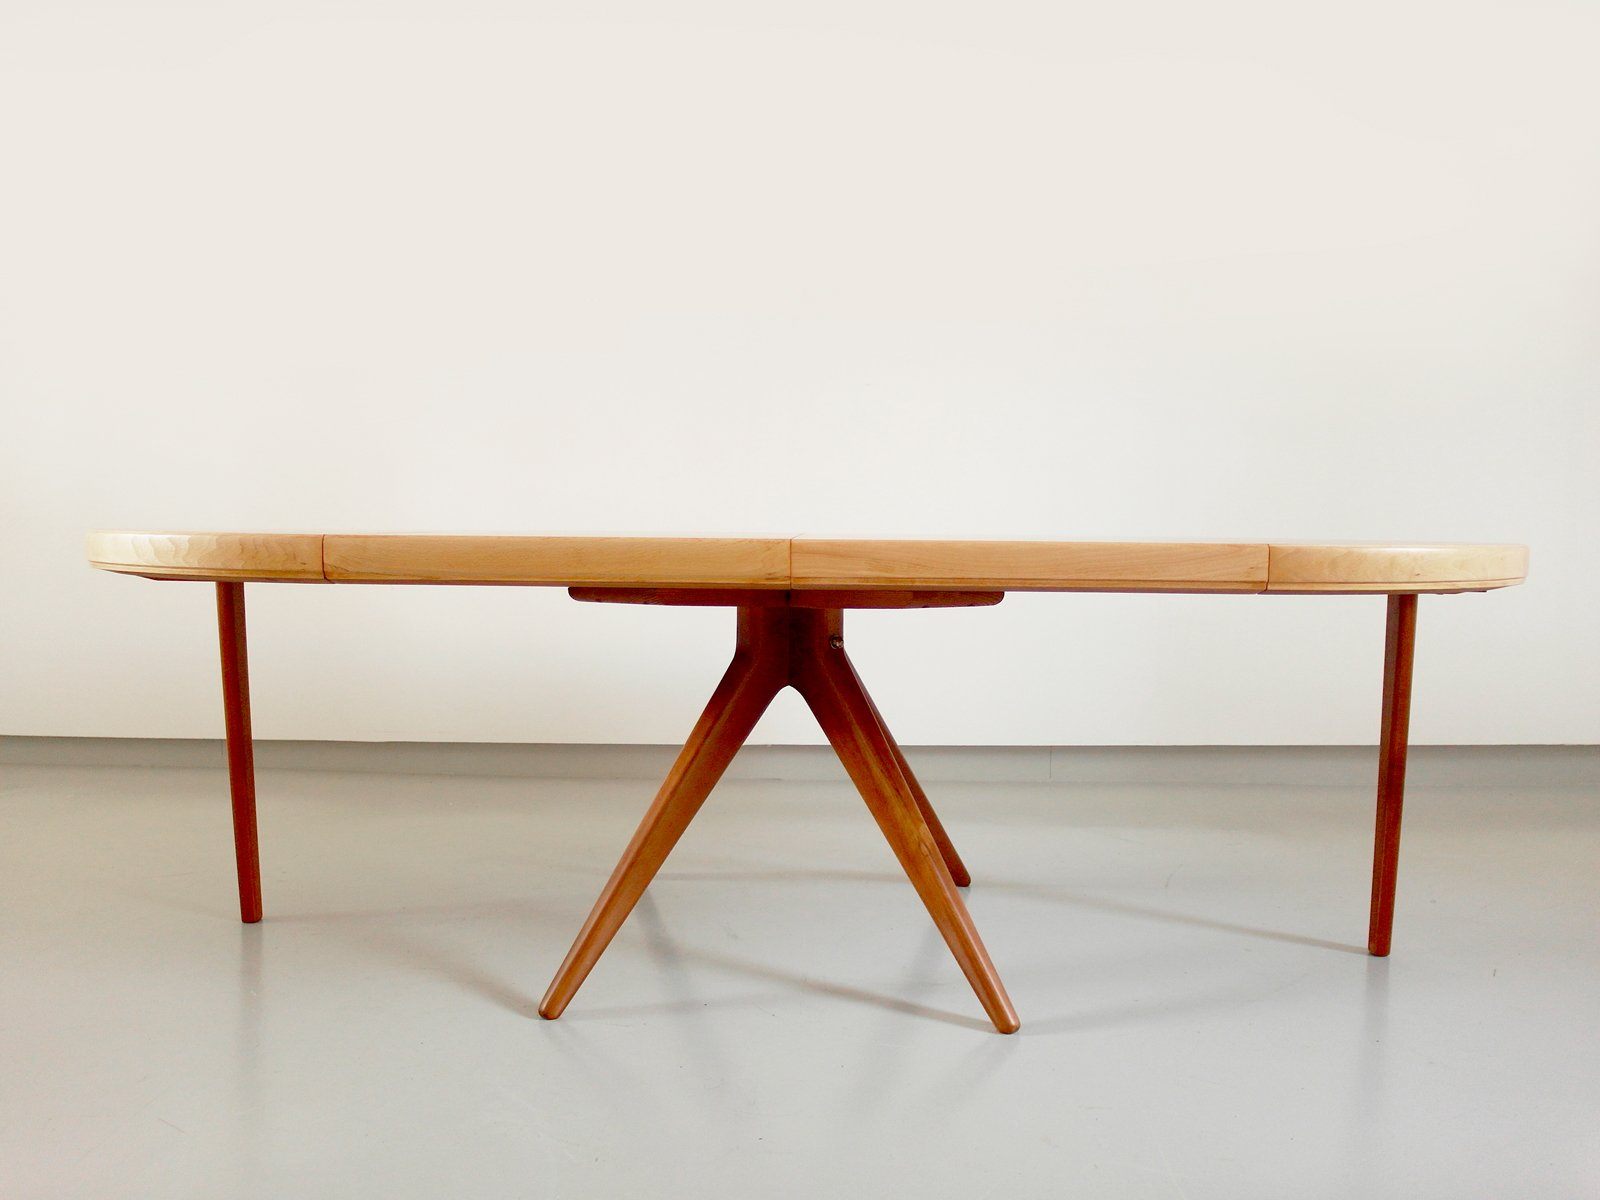 Futura Extendable Dining Table by David Rosén for Nordiska